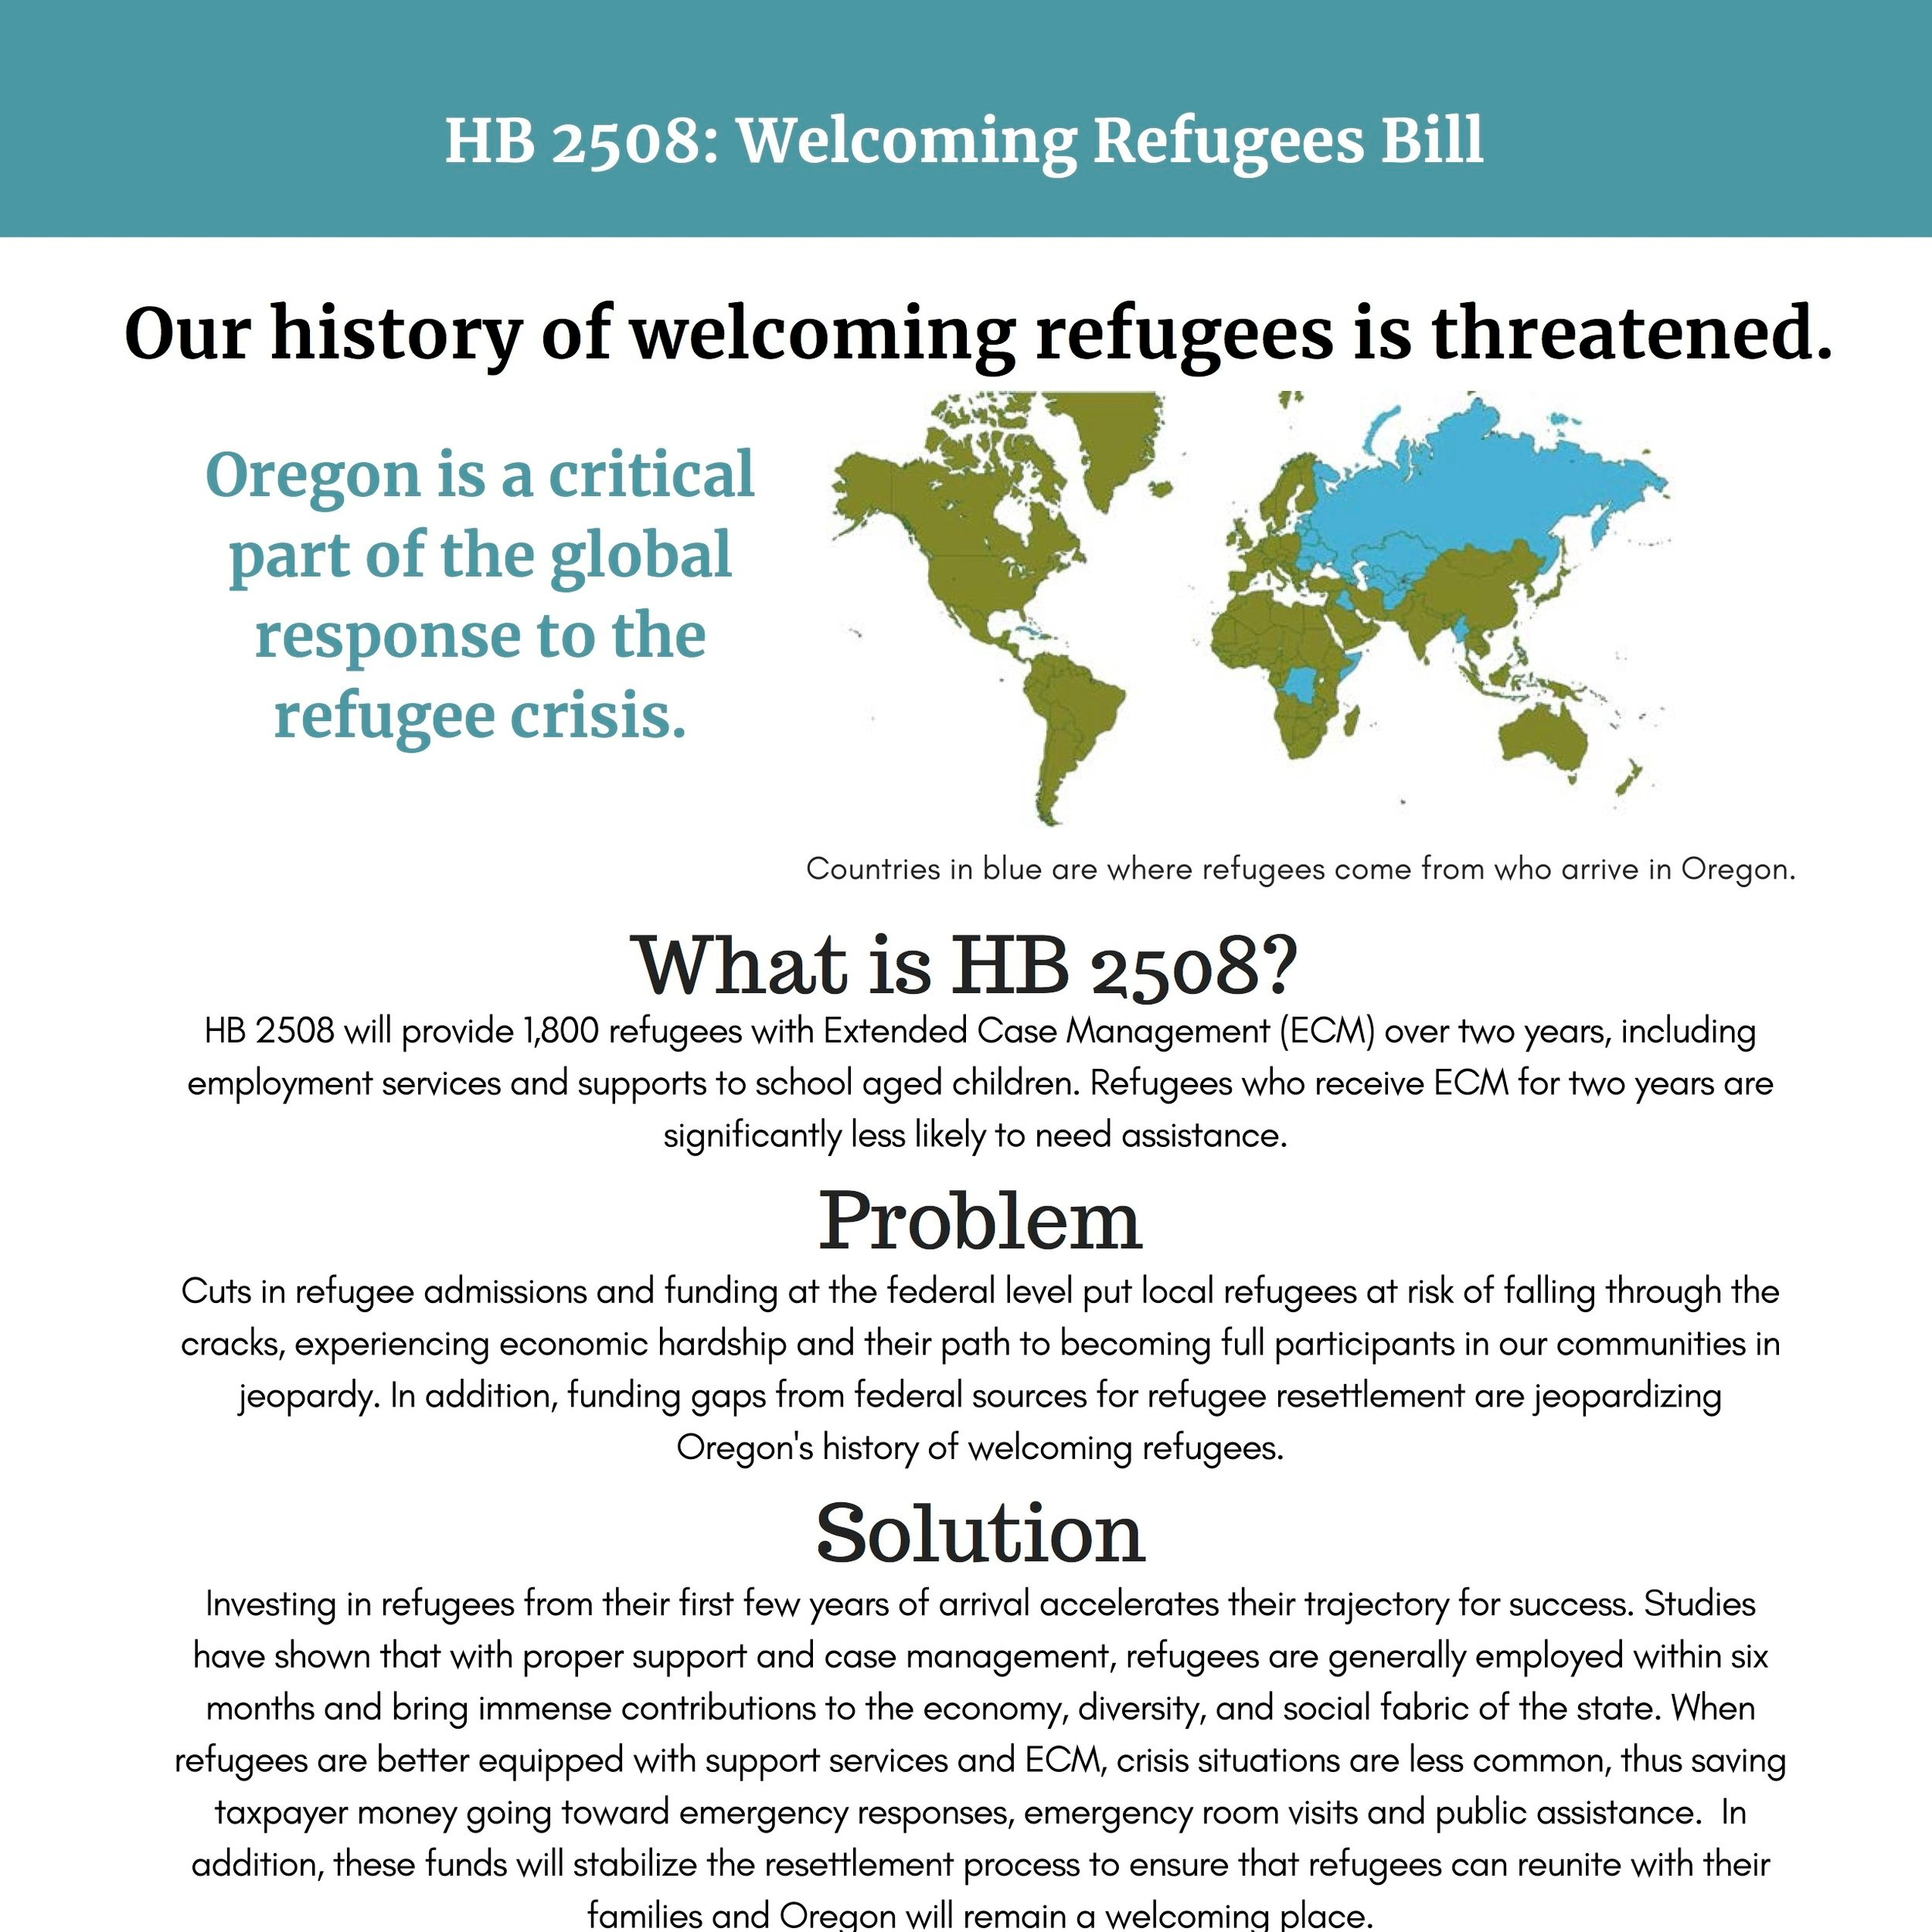 HB2508 Welcoming Refugees